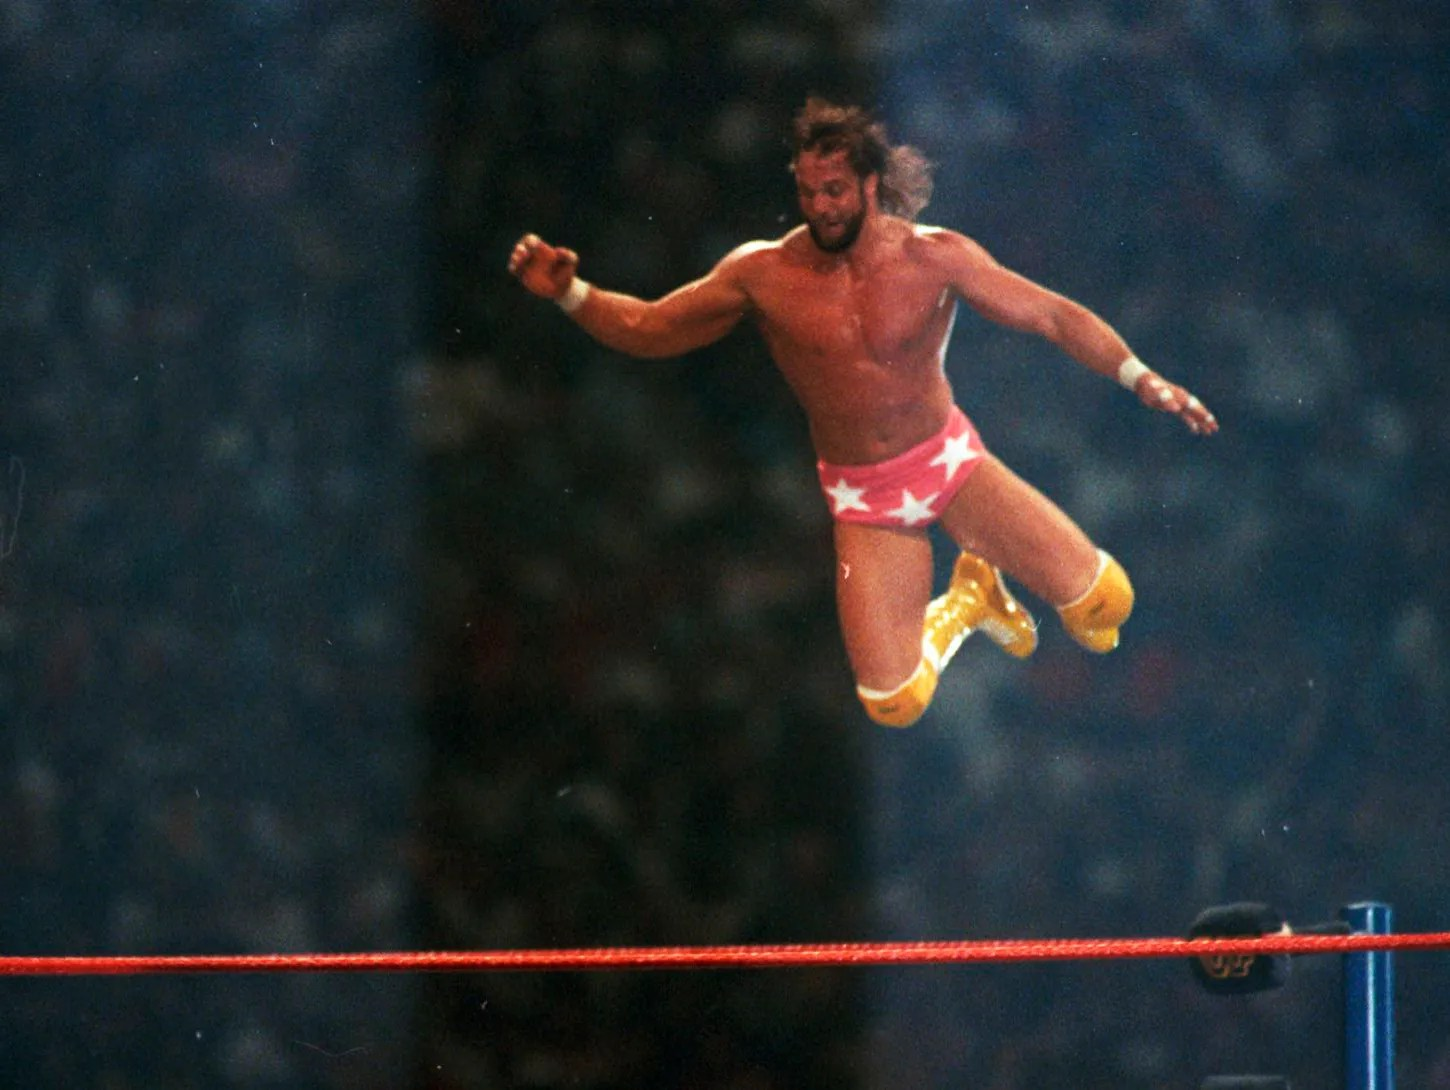 Larger than life An oral history of WrestleMania III